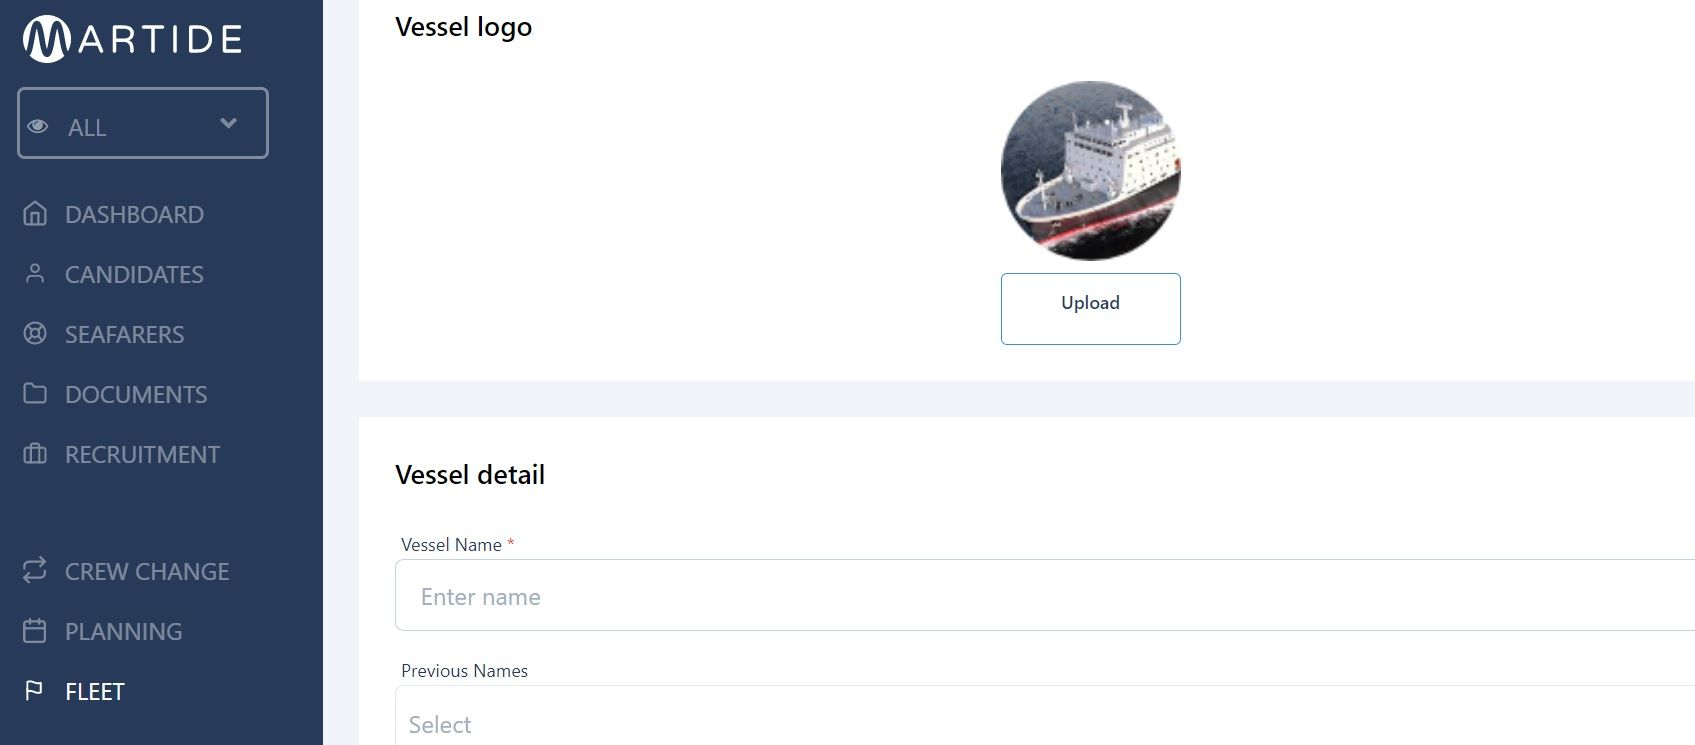 screenshot of Martide website showing a new vessel page